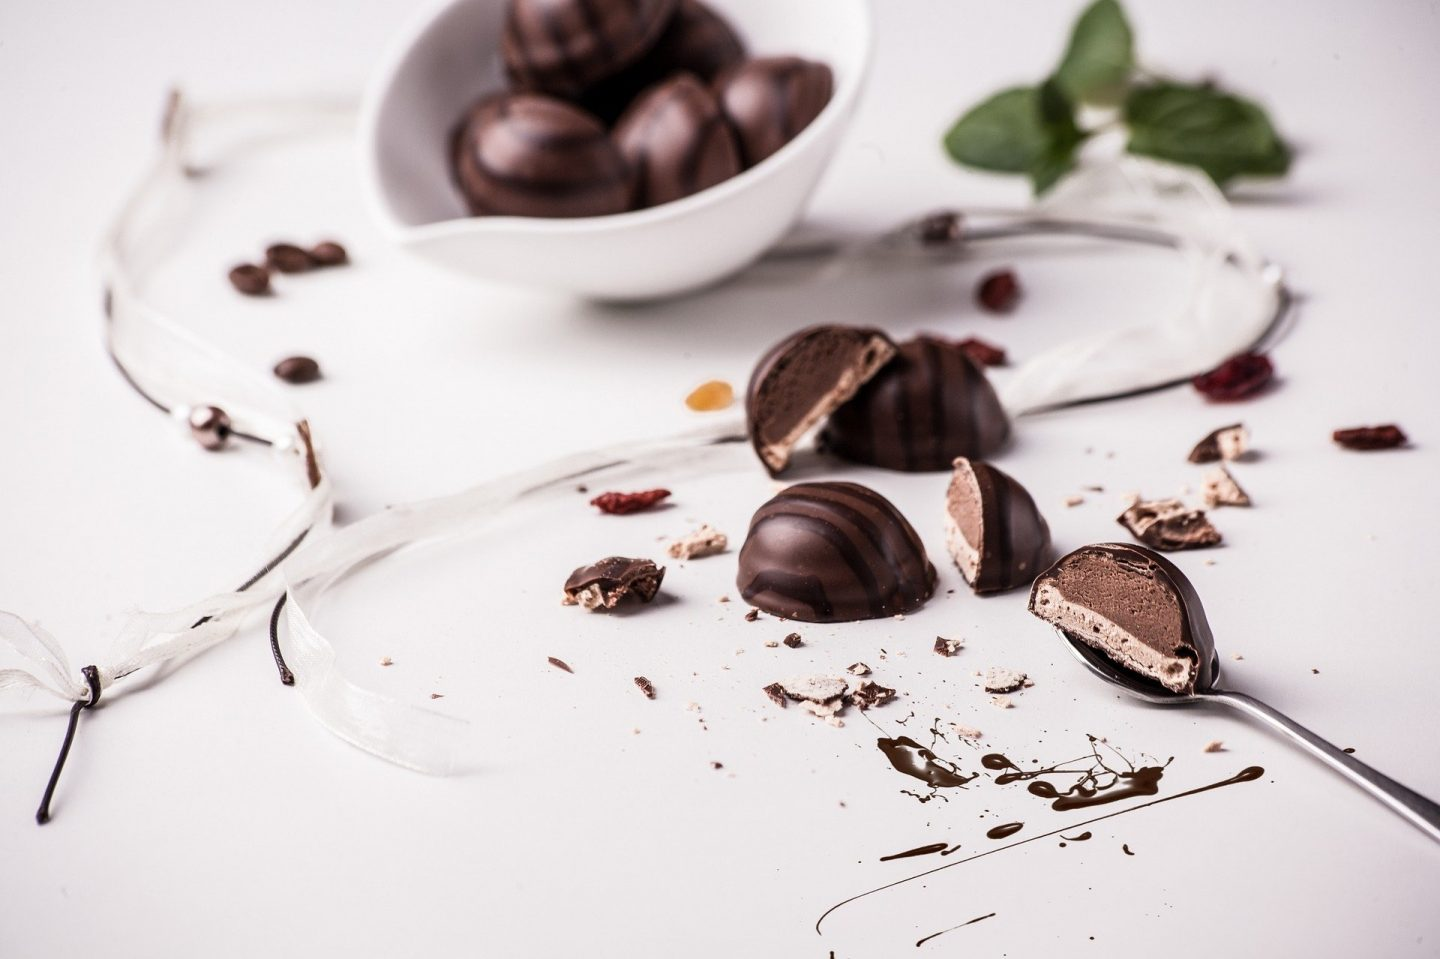 WHAT DOES CHOCOLATE BRING TO THE DIET AND WHO SHOULD EAT IT